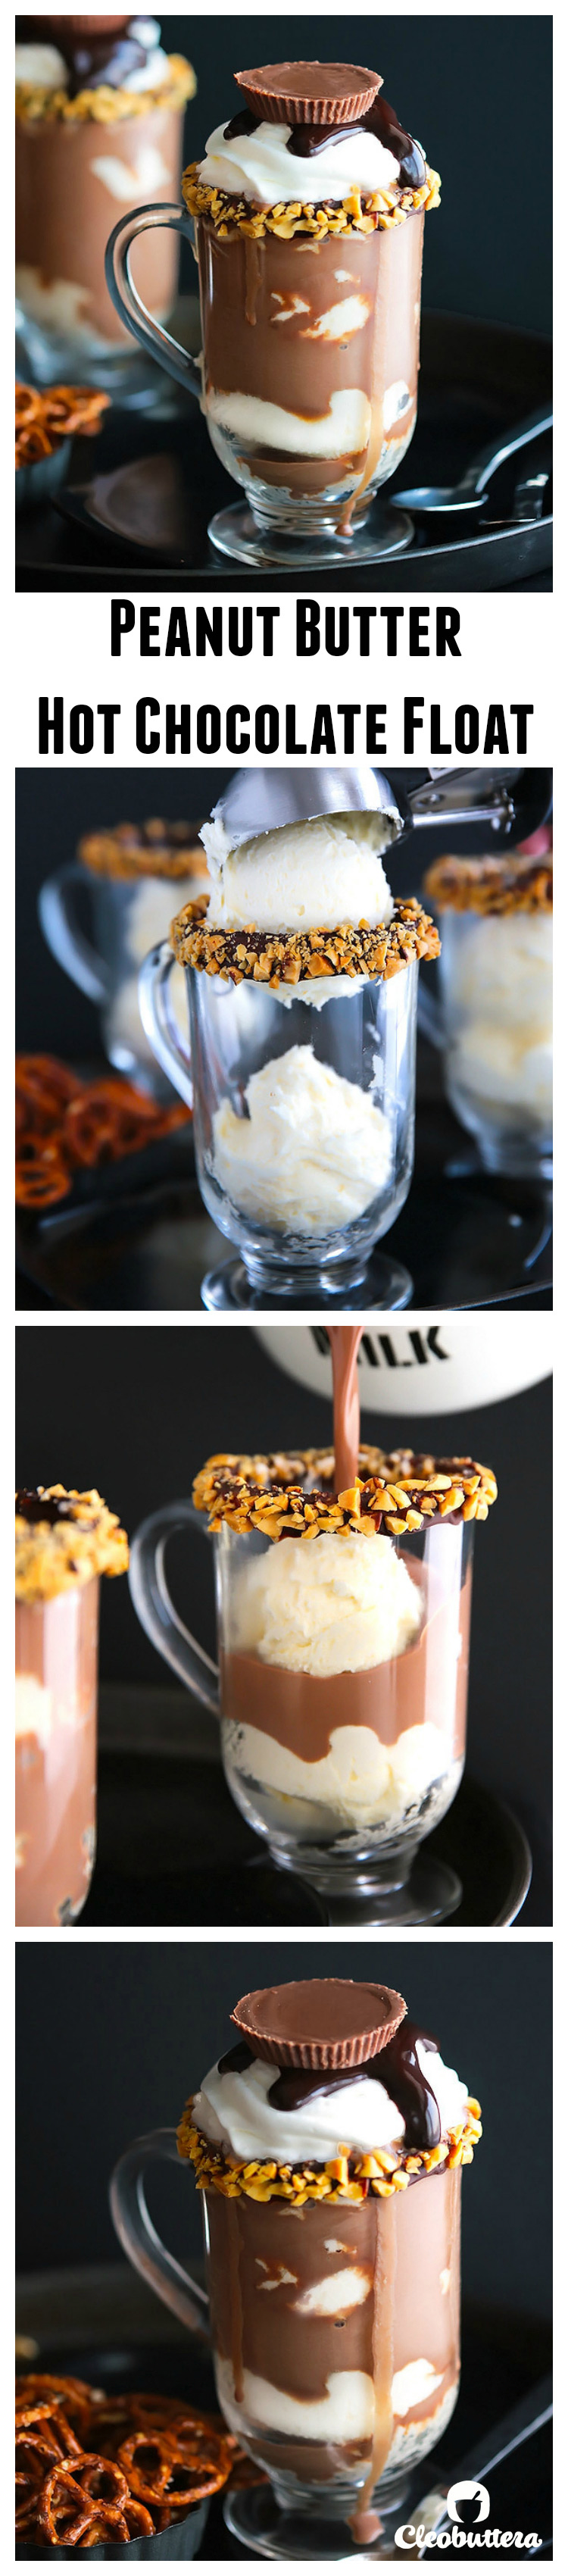 Peanut Butter Hot Chocolate Float - Pinterest